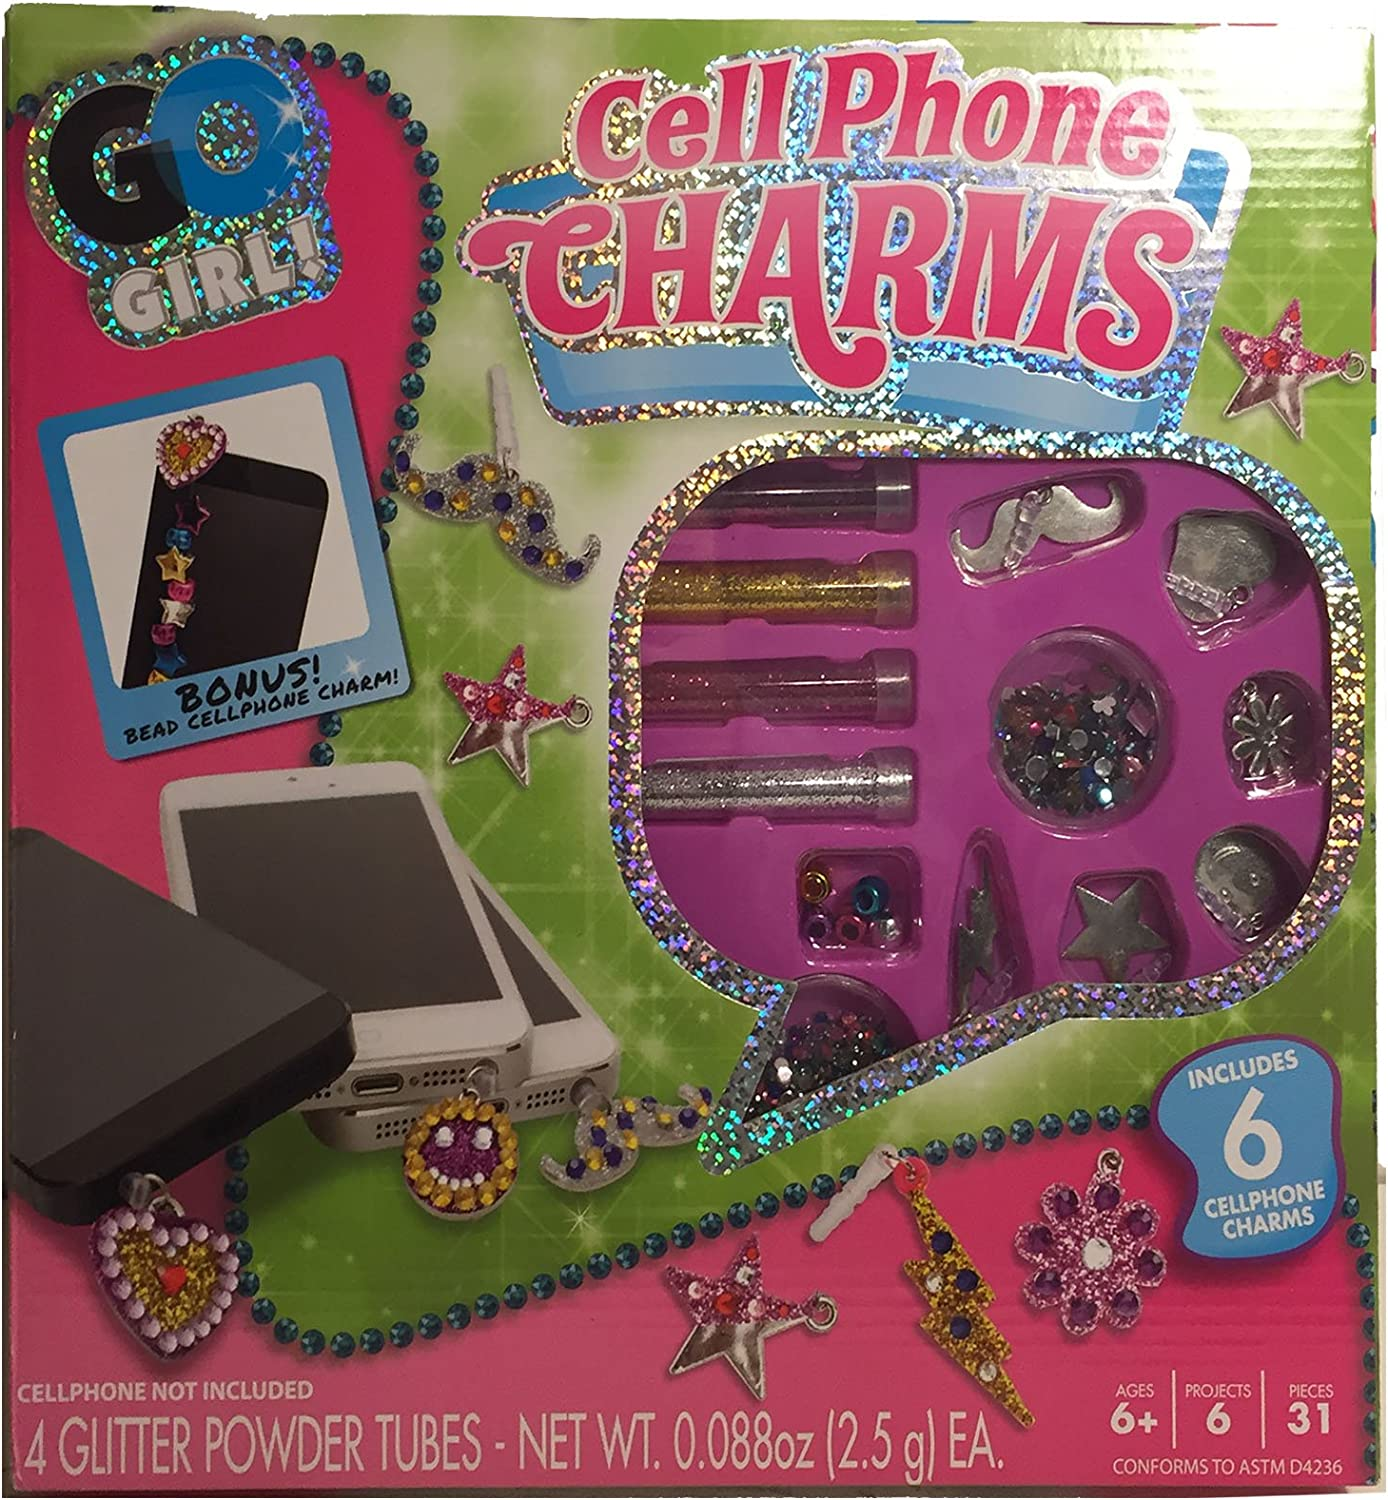 Go Girl Cell Phone Charms Kit Create 6 Includes Charm Max 58% OFF Animer and price revision Your Own